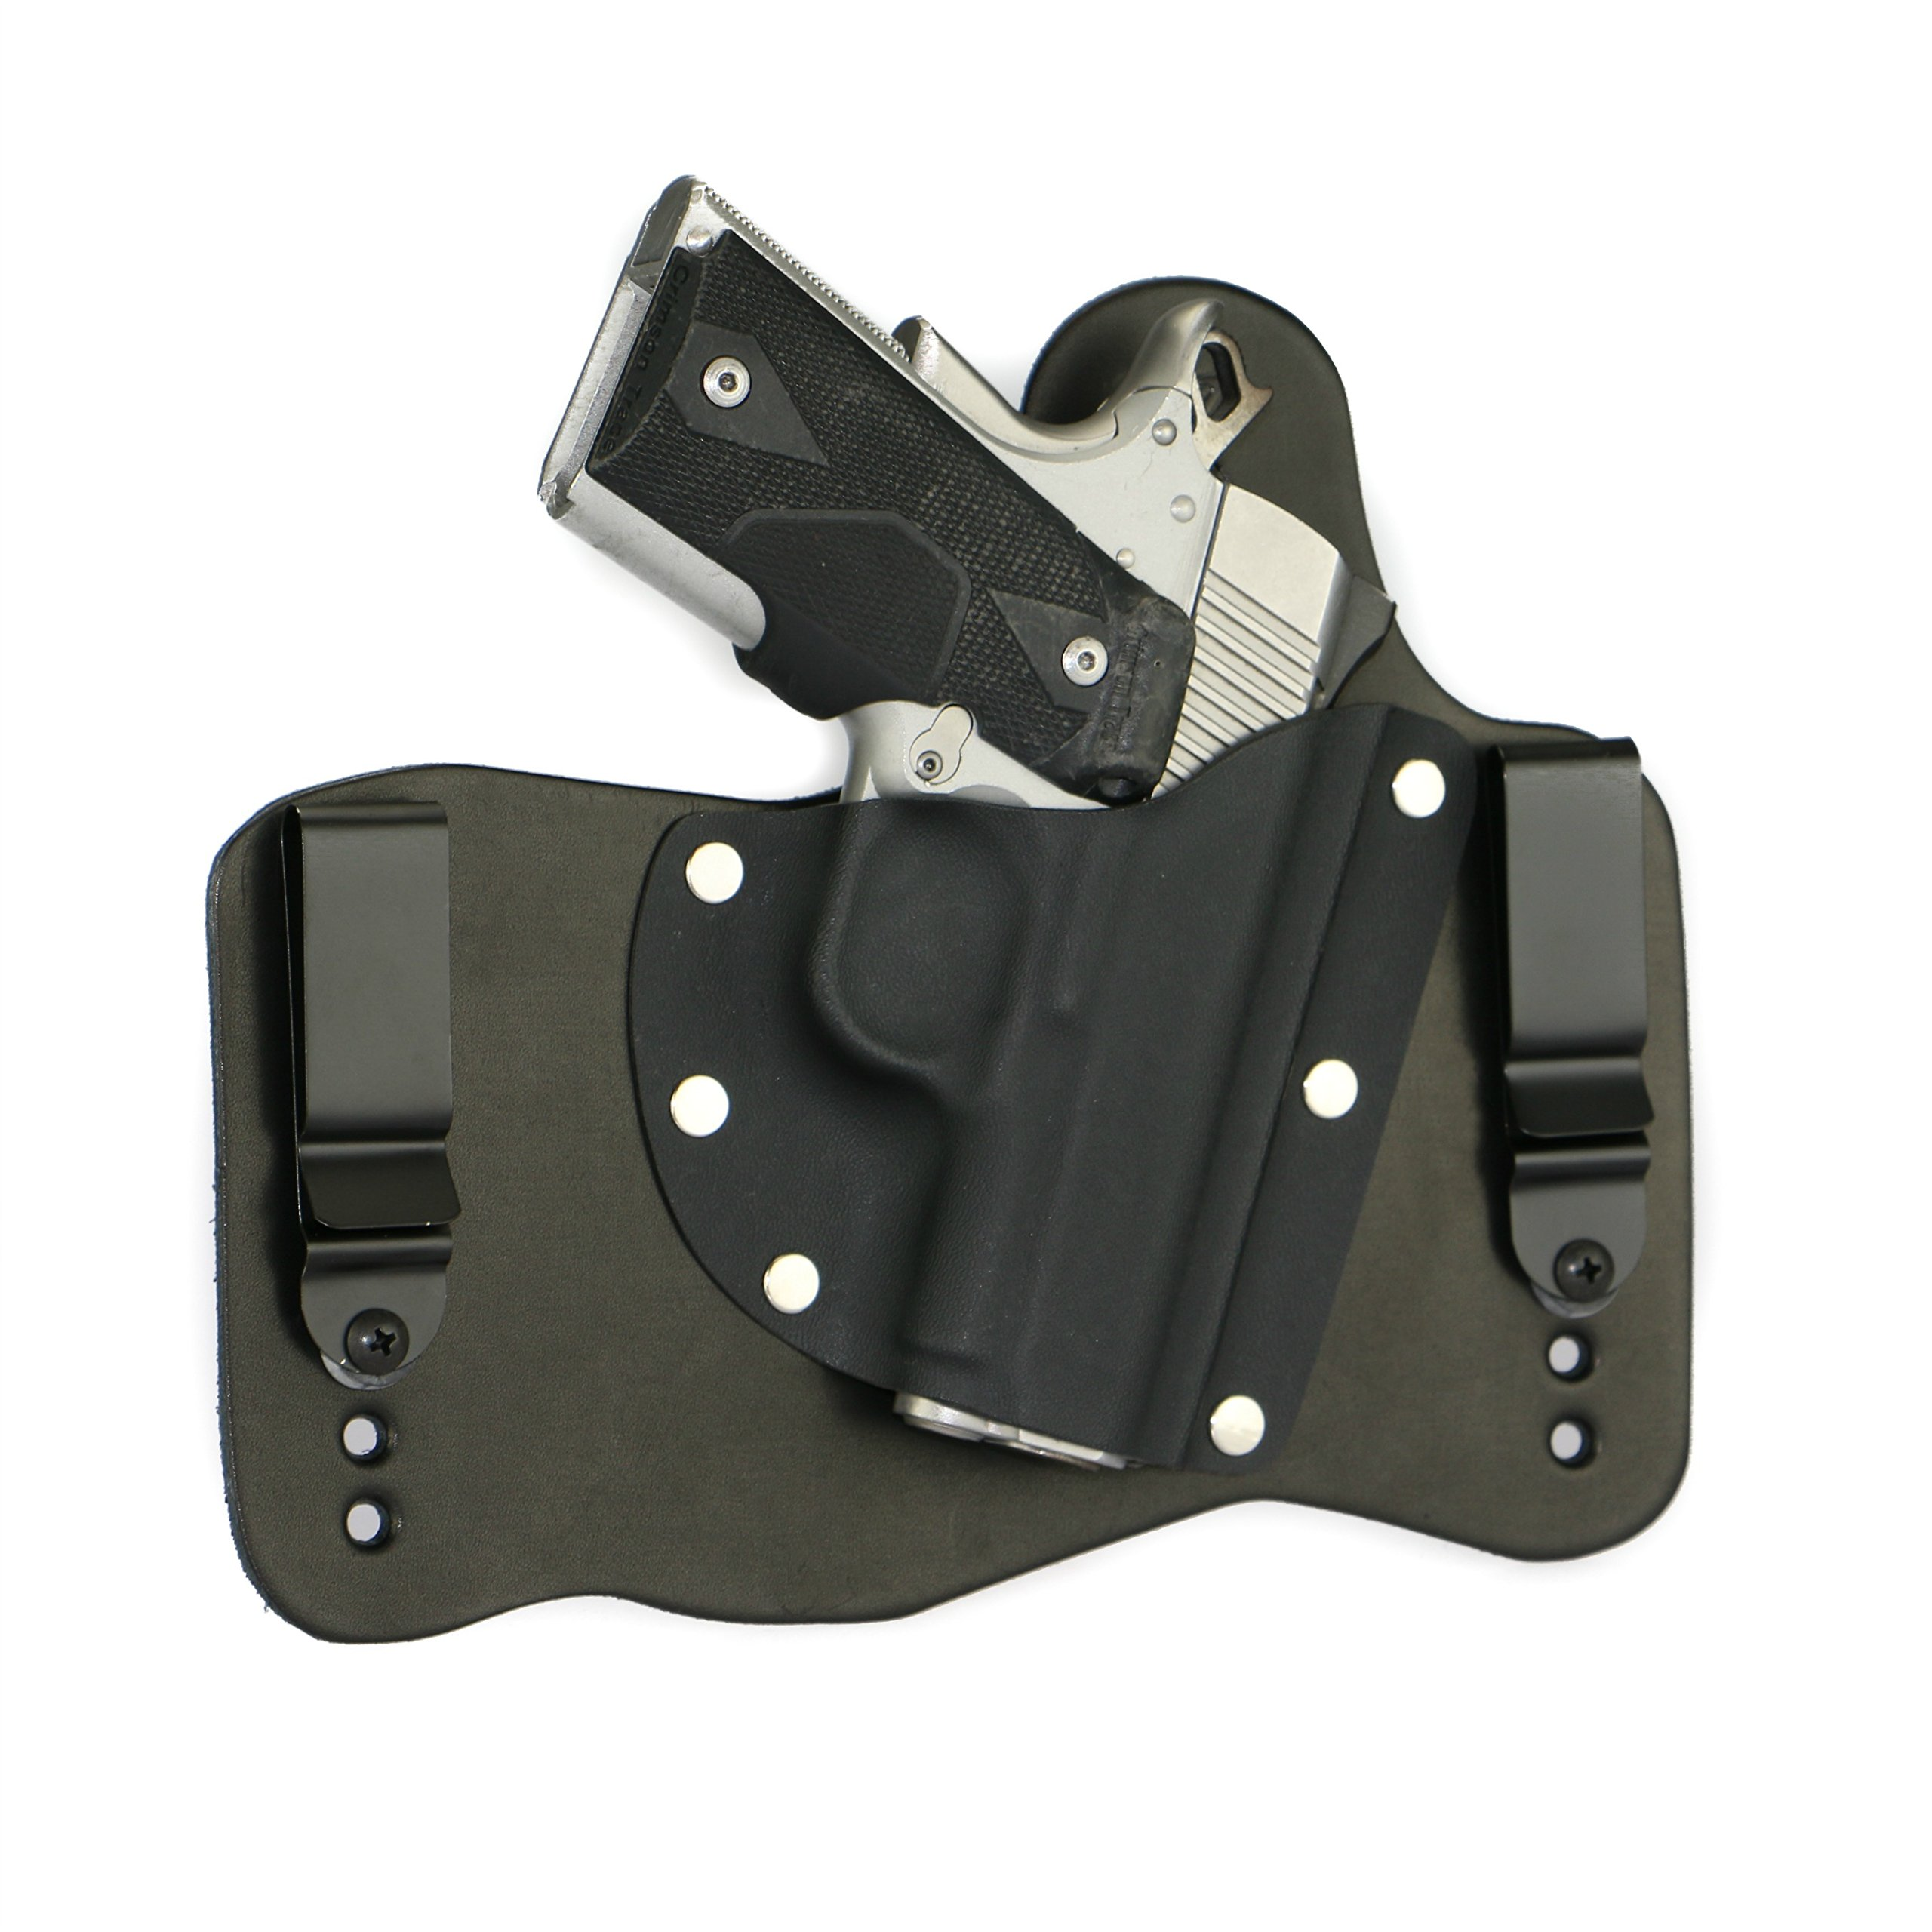 FoxX Holsters Kimber 1911 Holster